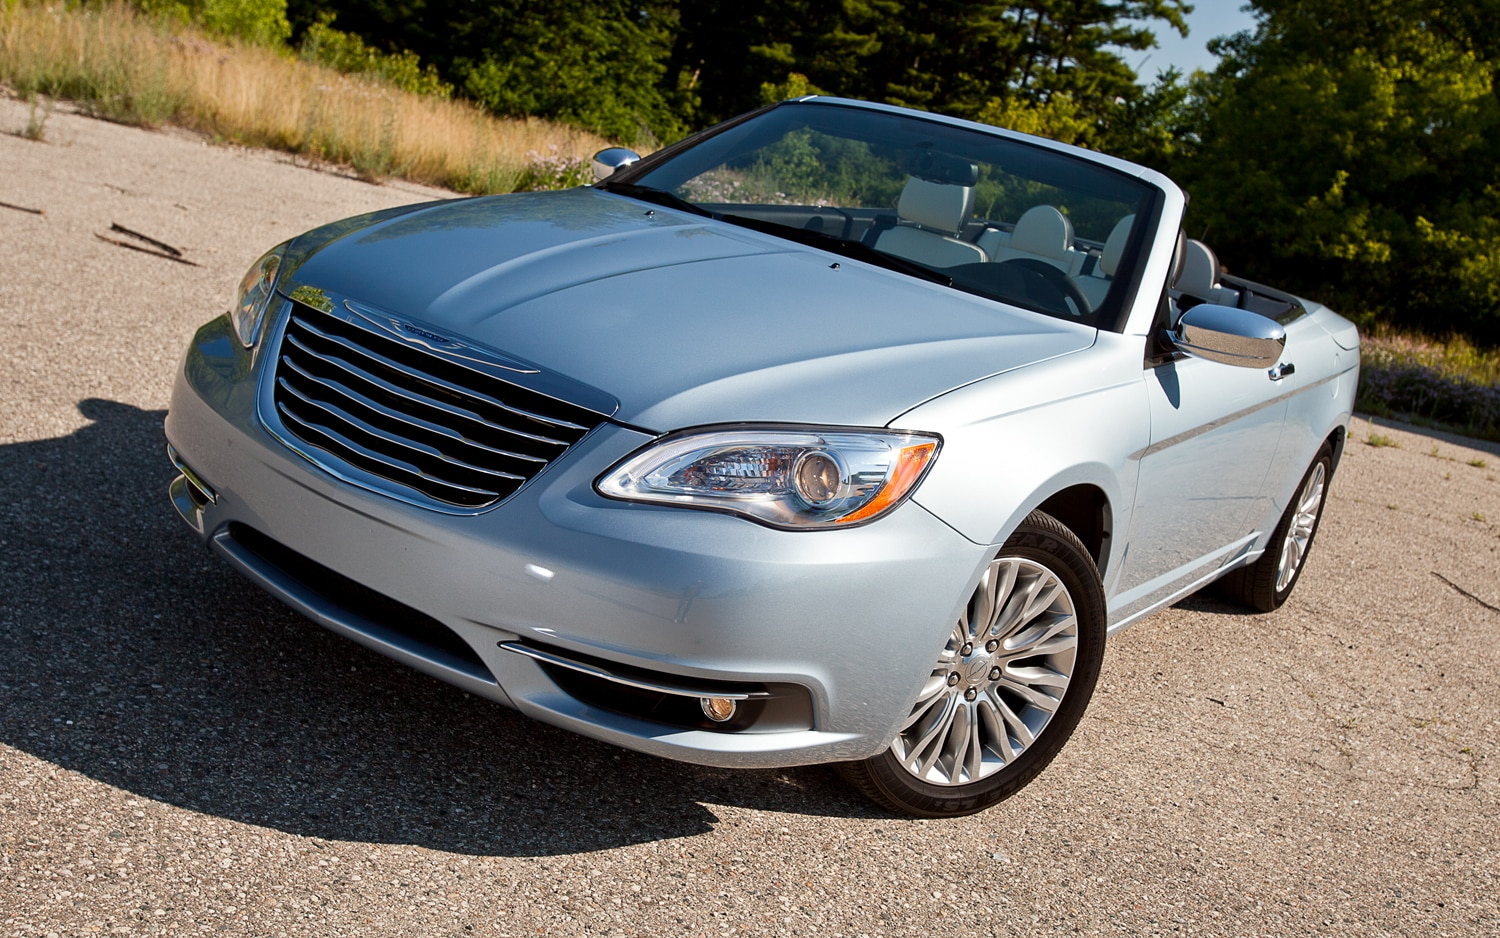 wallpaper convertible convertibles side chrysler you viewing titled silver are